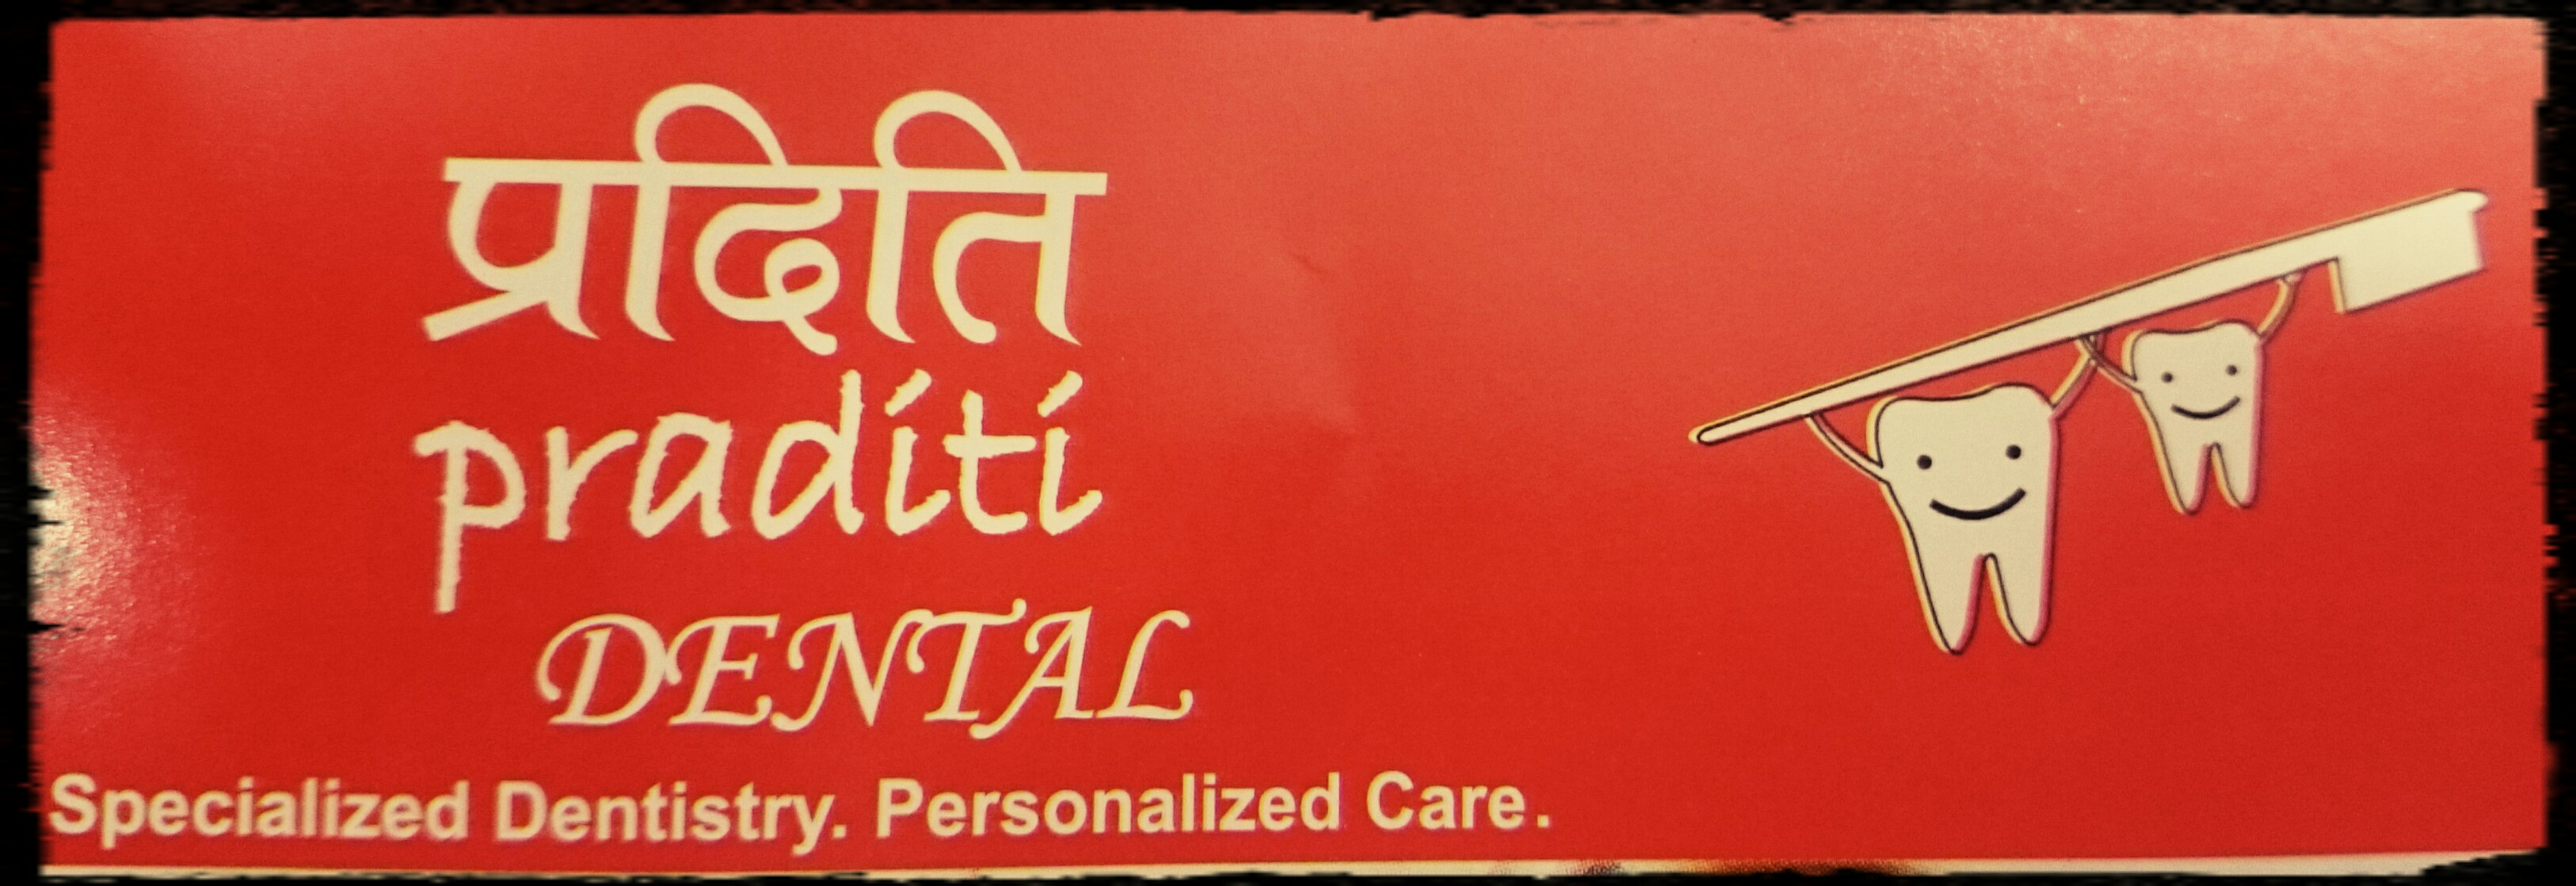 Praditi Dental